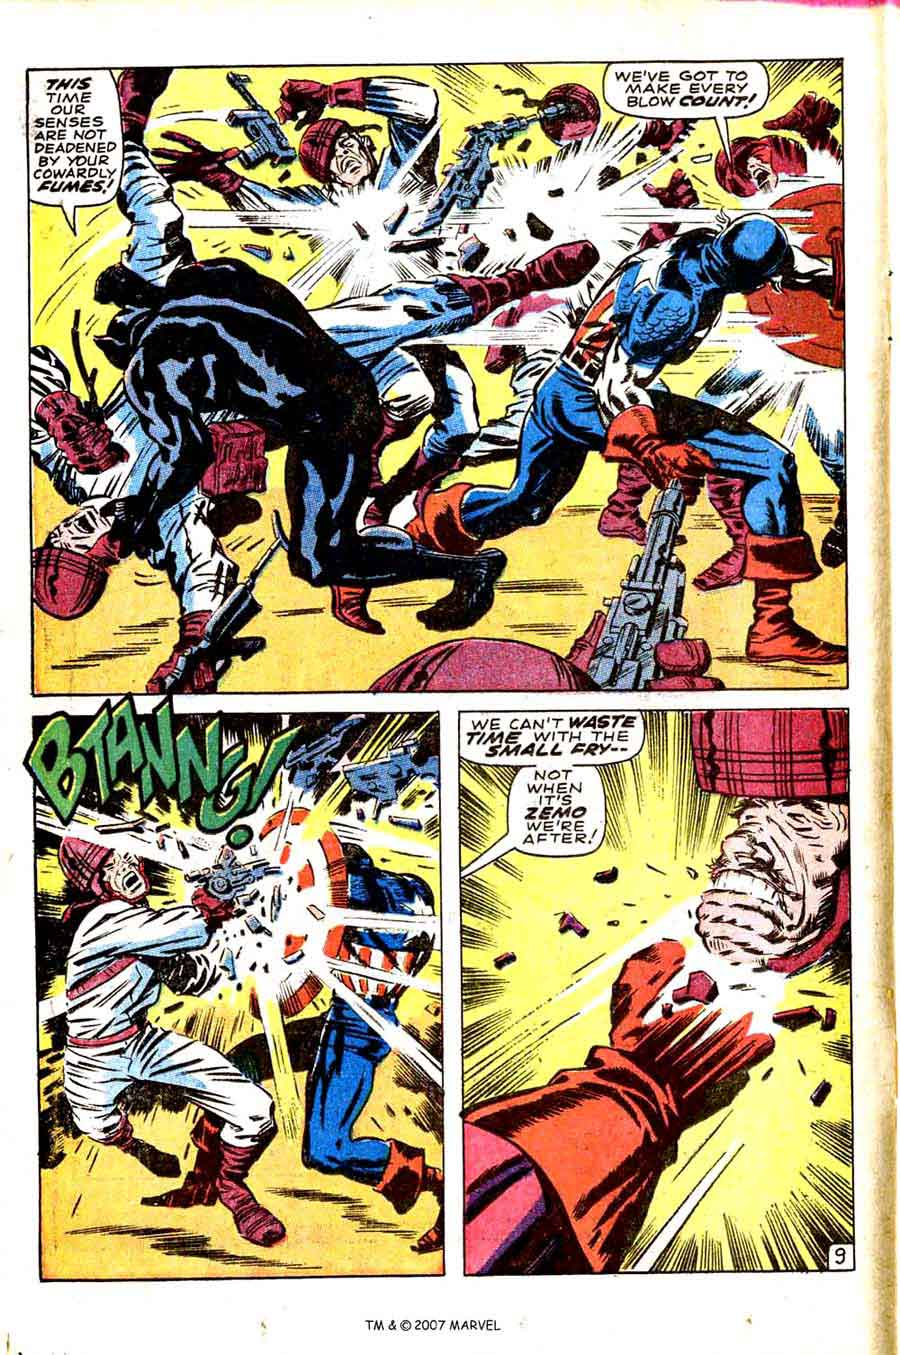 Captain America v1 #100 marvel comic book page art by Jack Kirby